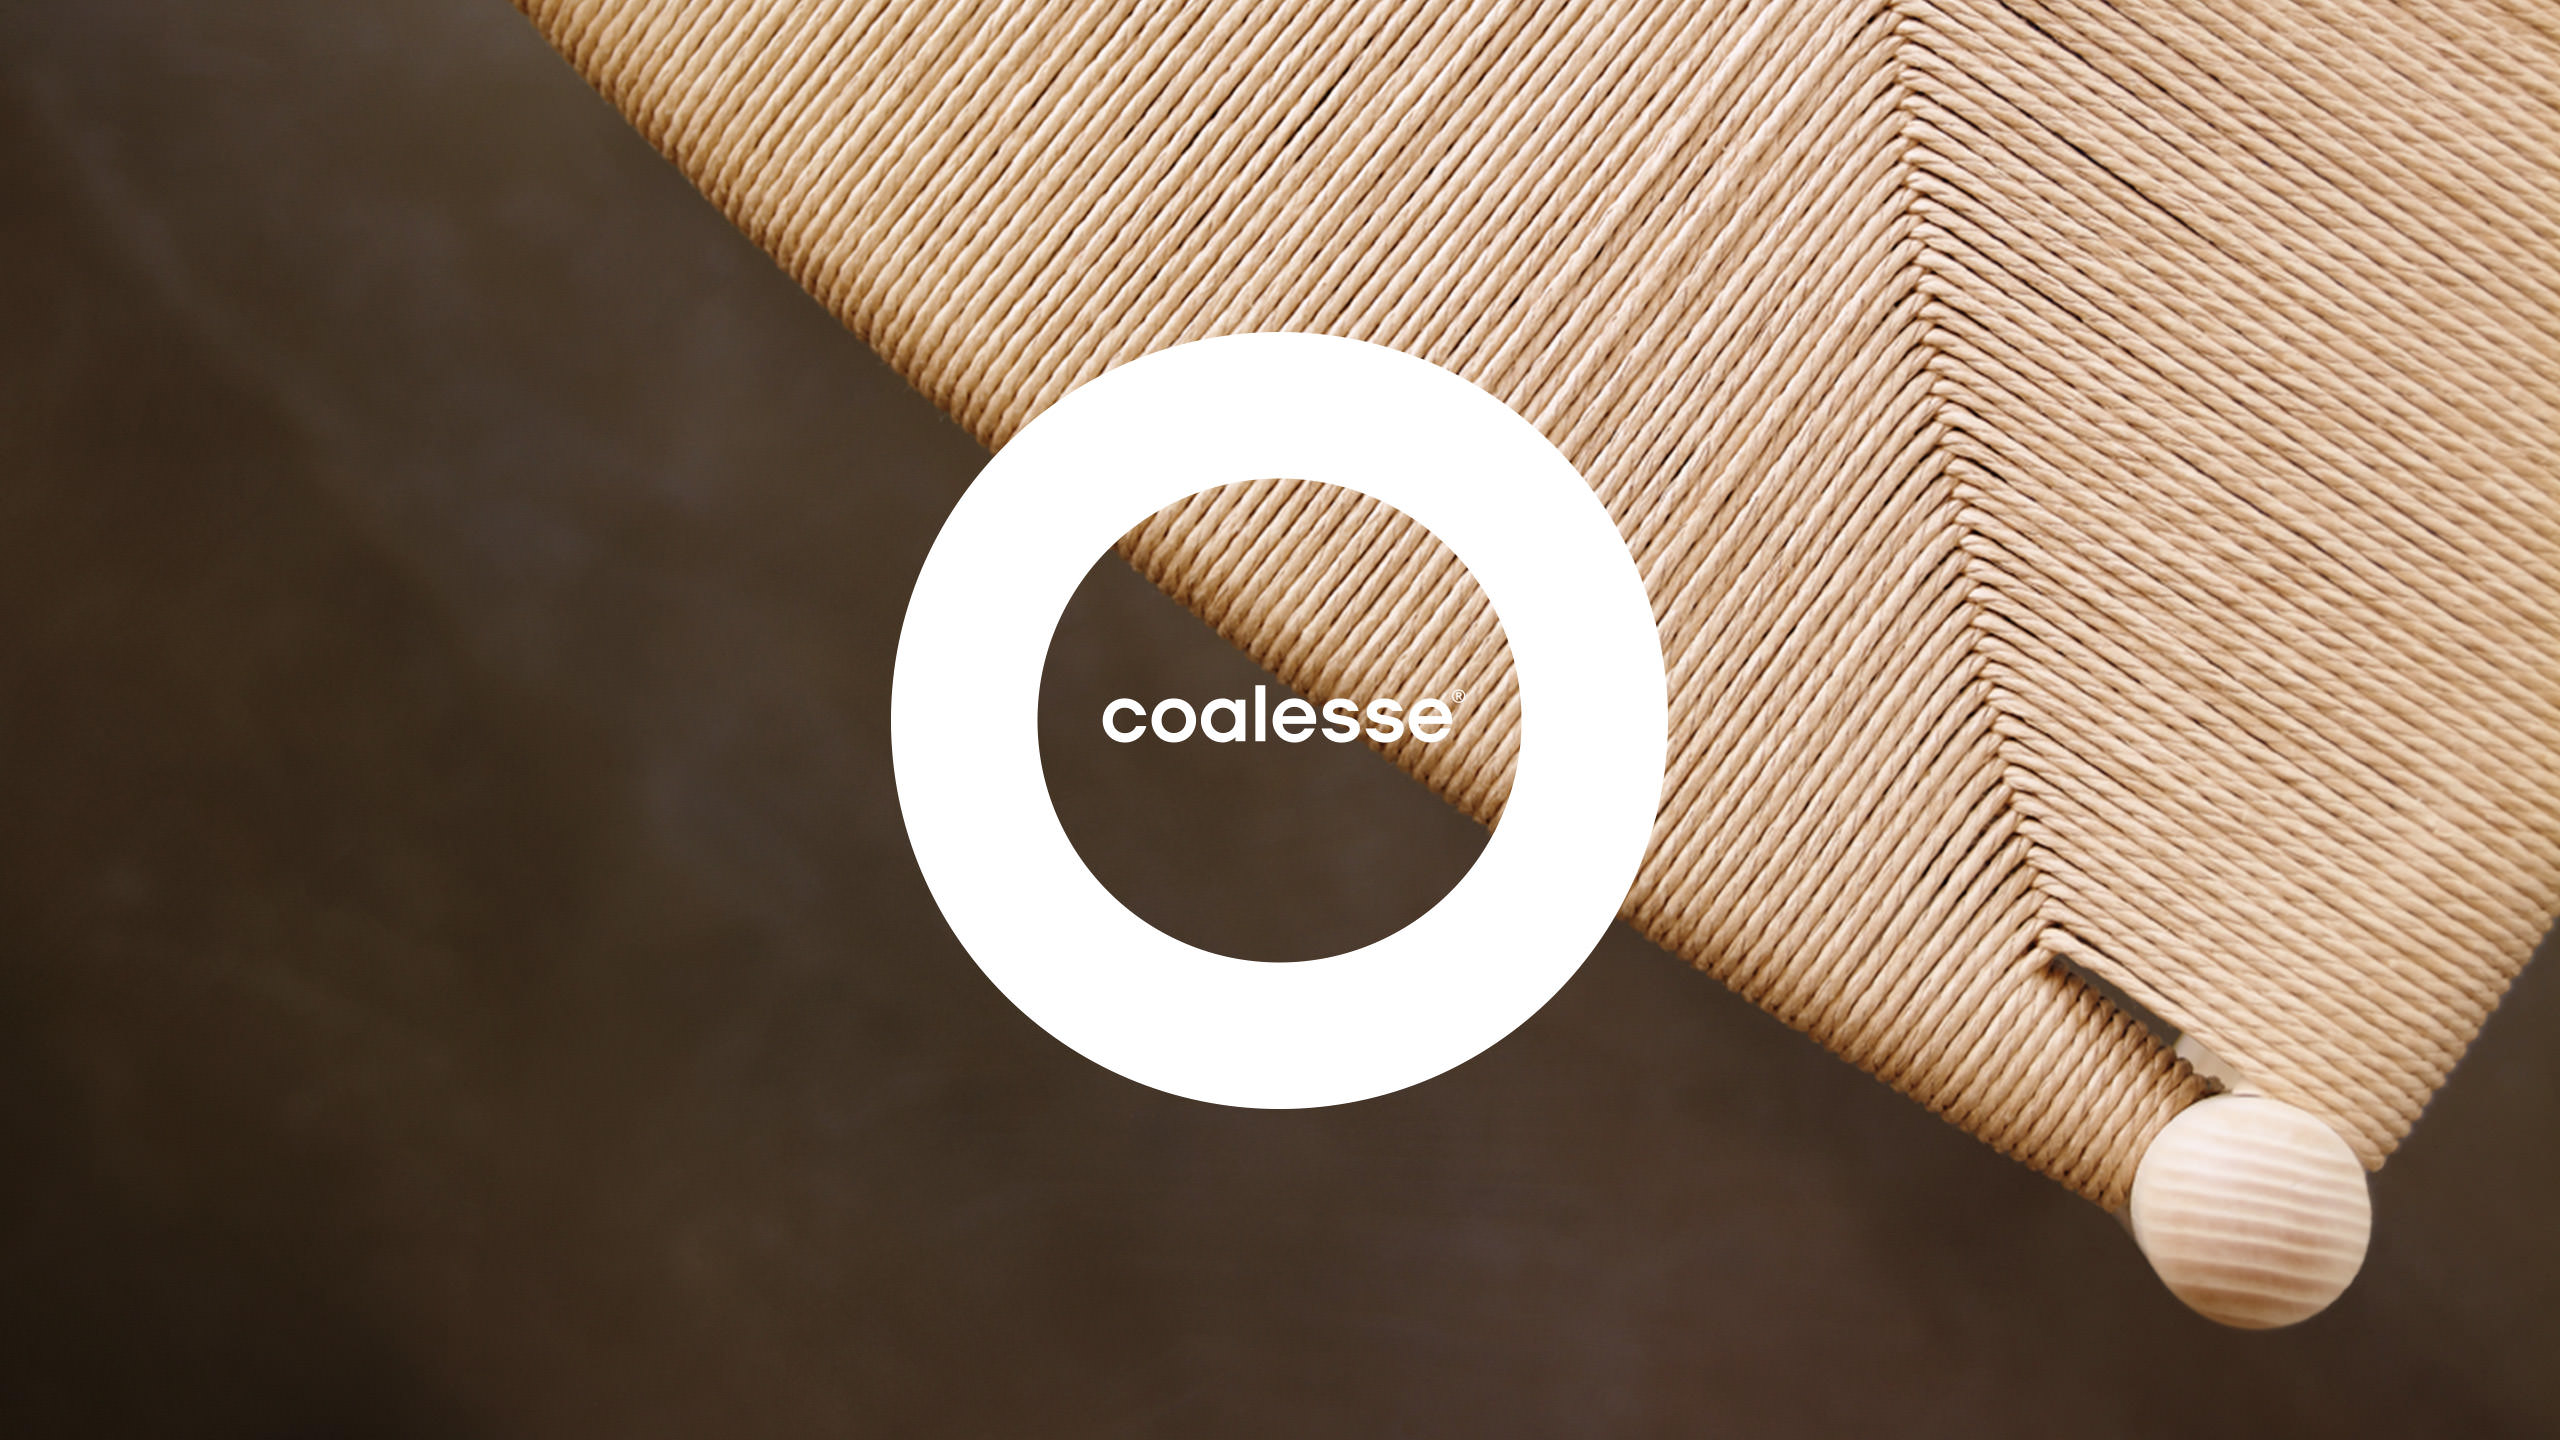 coalesse-brand-1-logo-chair-background